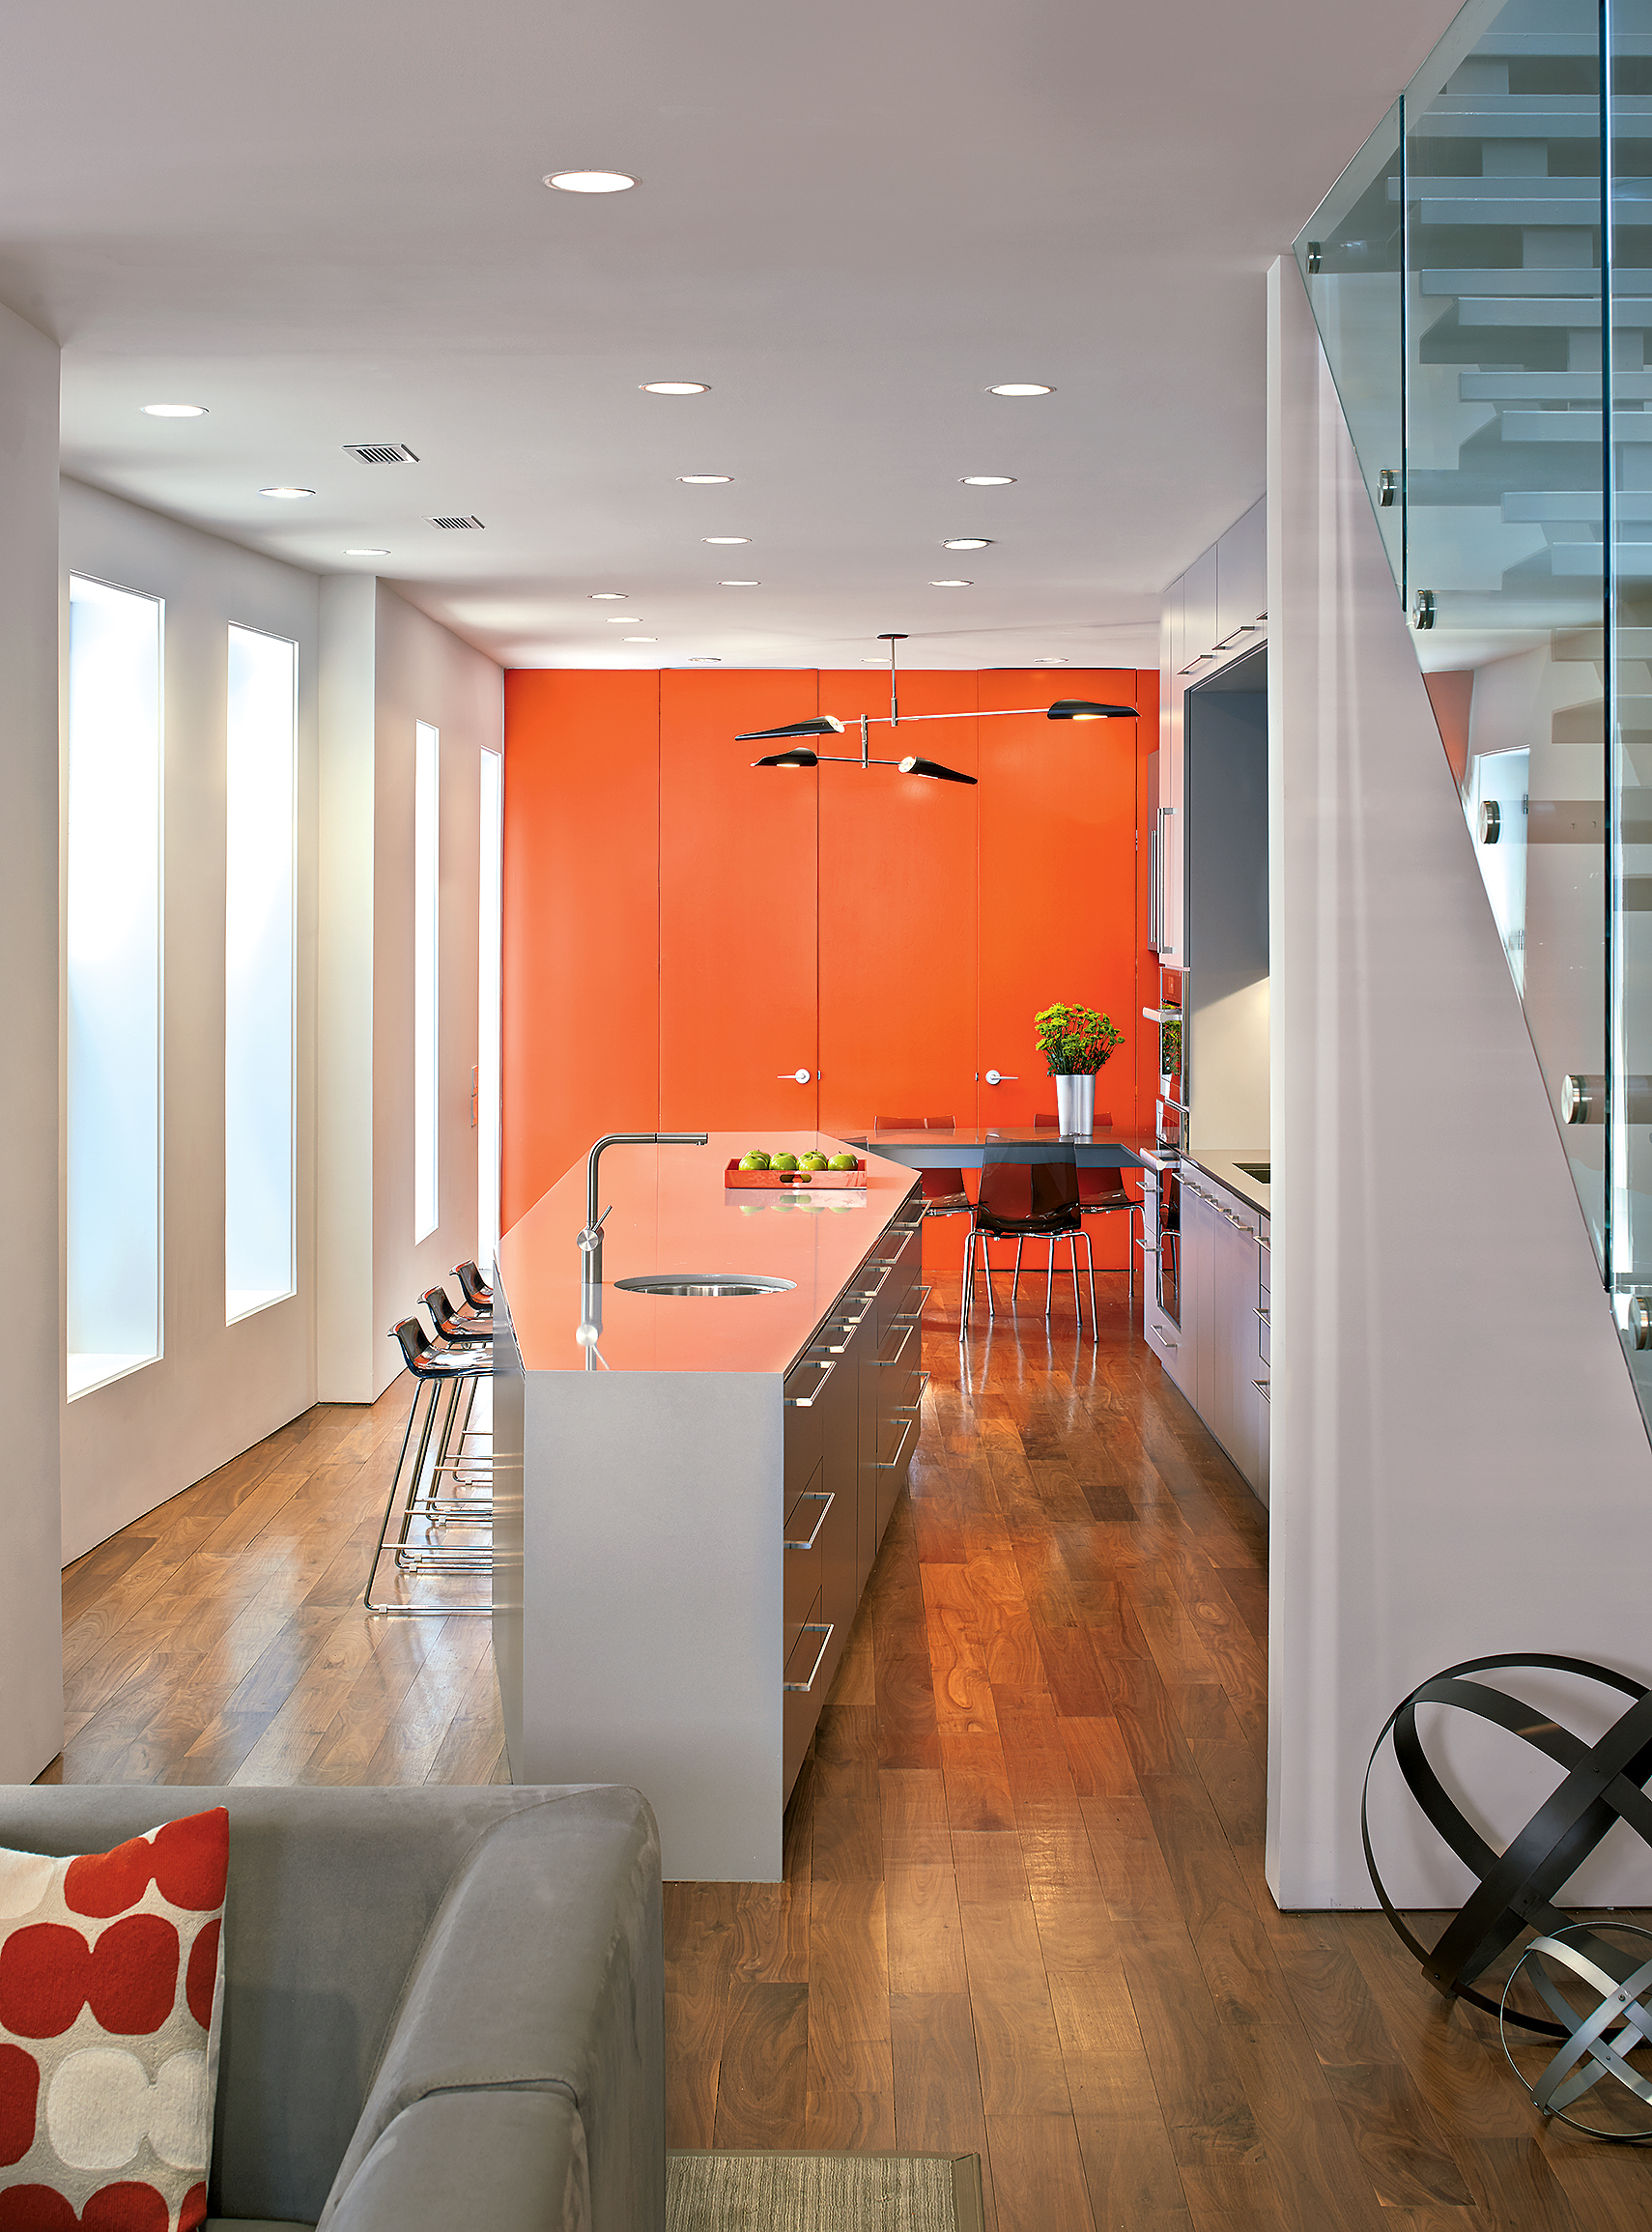 The bright back wall in this West End rowhouse designed by architect Robert Gurney includes doors to a storage-packed pantry and a powder room. Photograph by Anice Hoachlander.